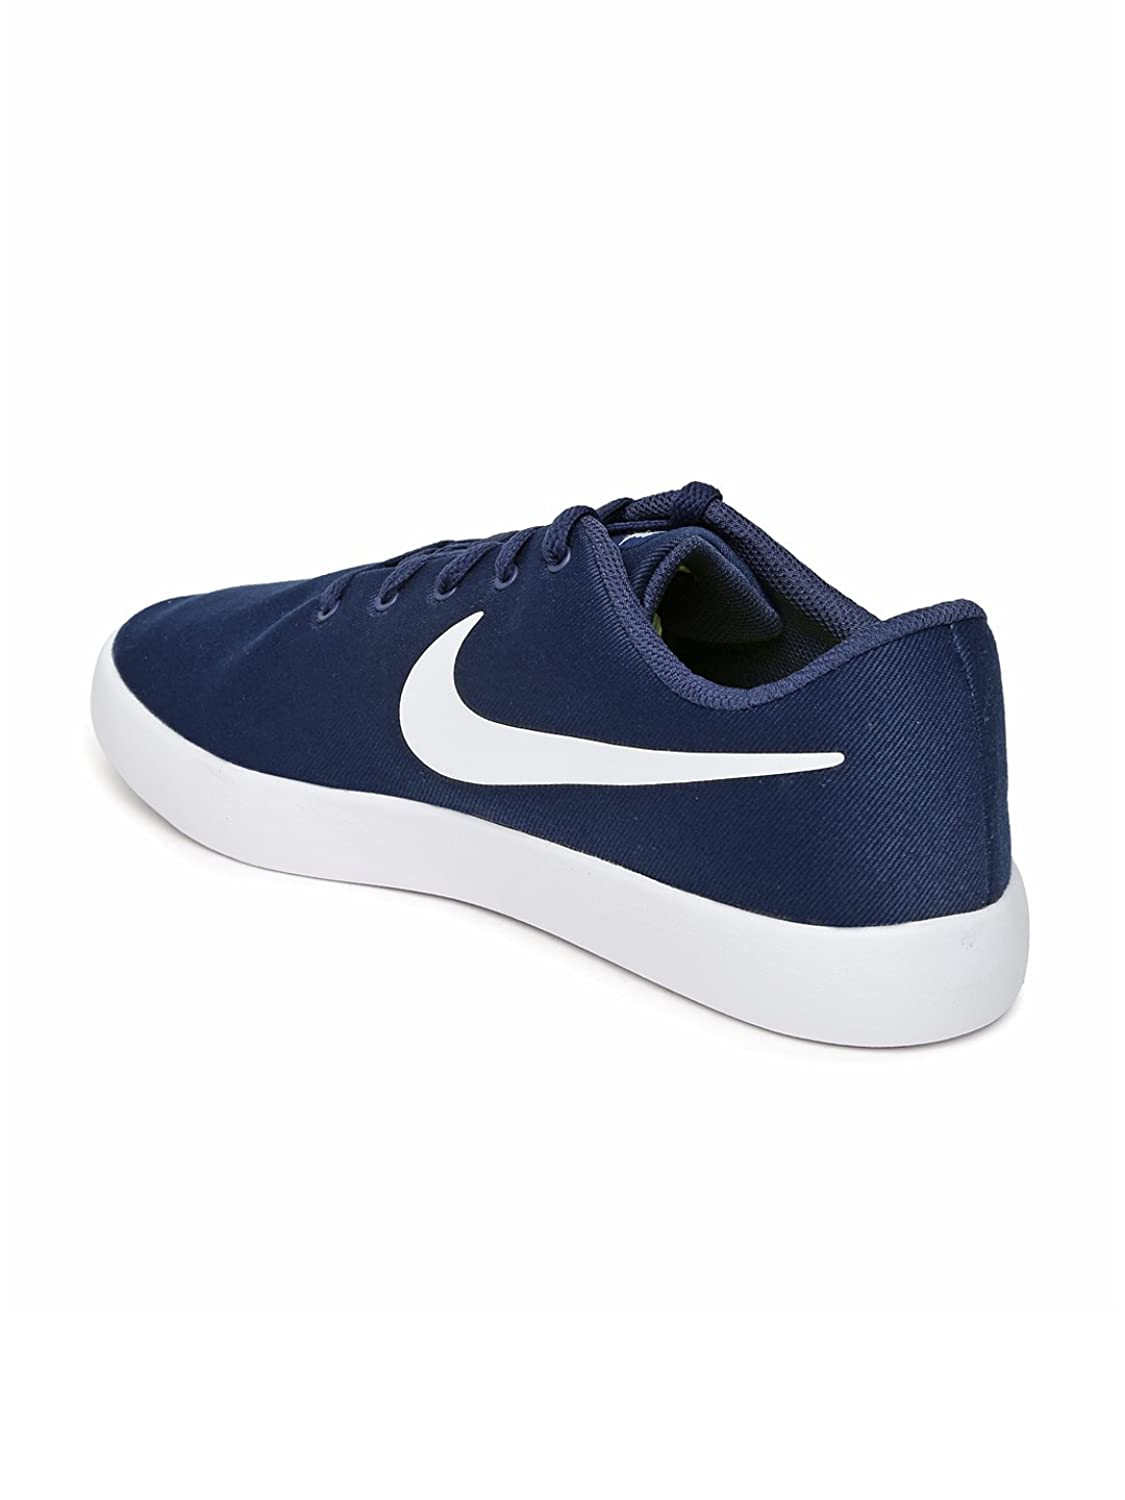 Nike Men Essentialist Sneakers (8, Navy): Buy Online at Low Prices in India  - Amazon.in